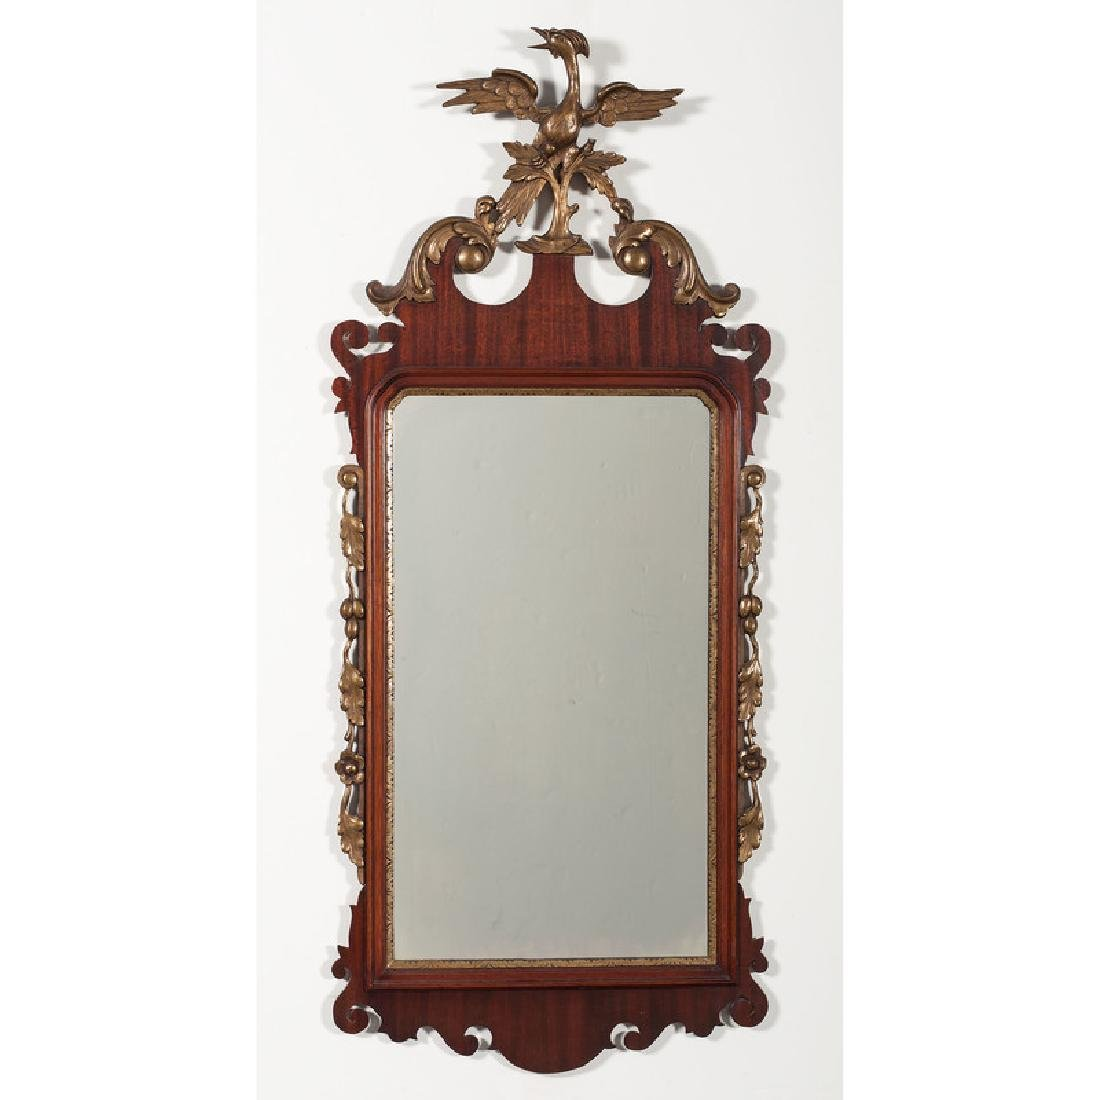 Chippendale-style Mirror with Eagle